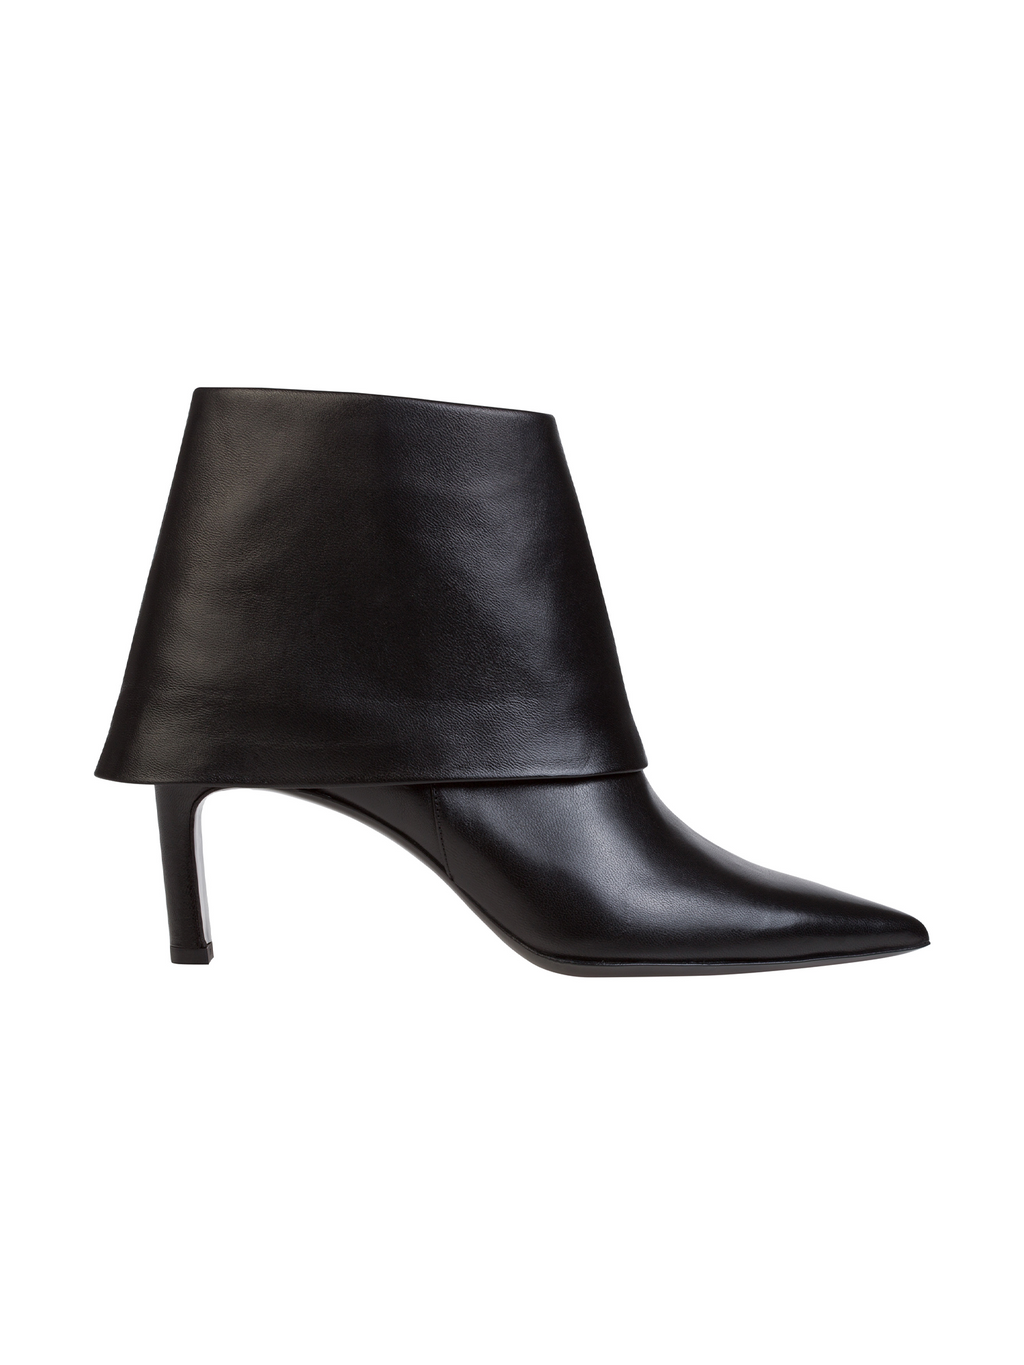 Dorothee Schumacher Strappy Seduction Fold Down Bootie